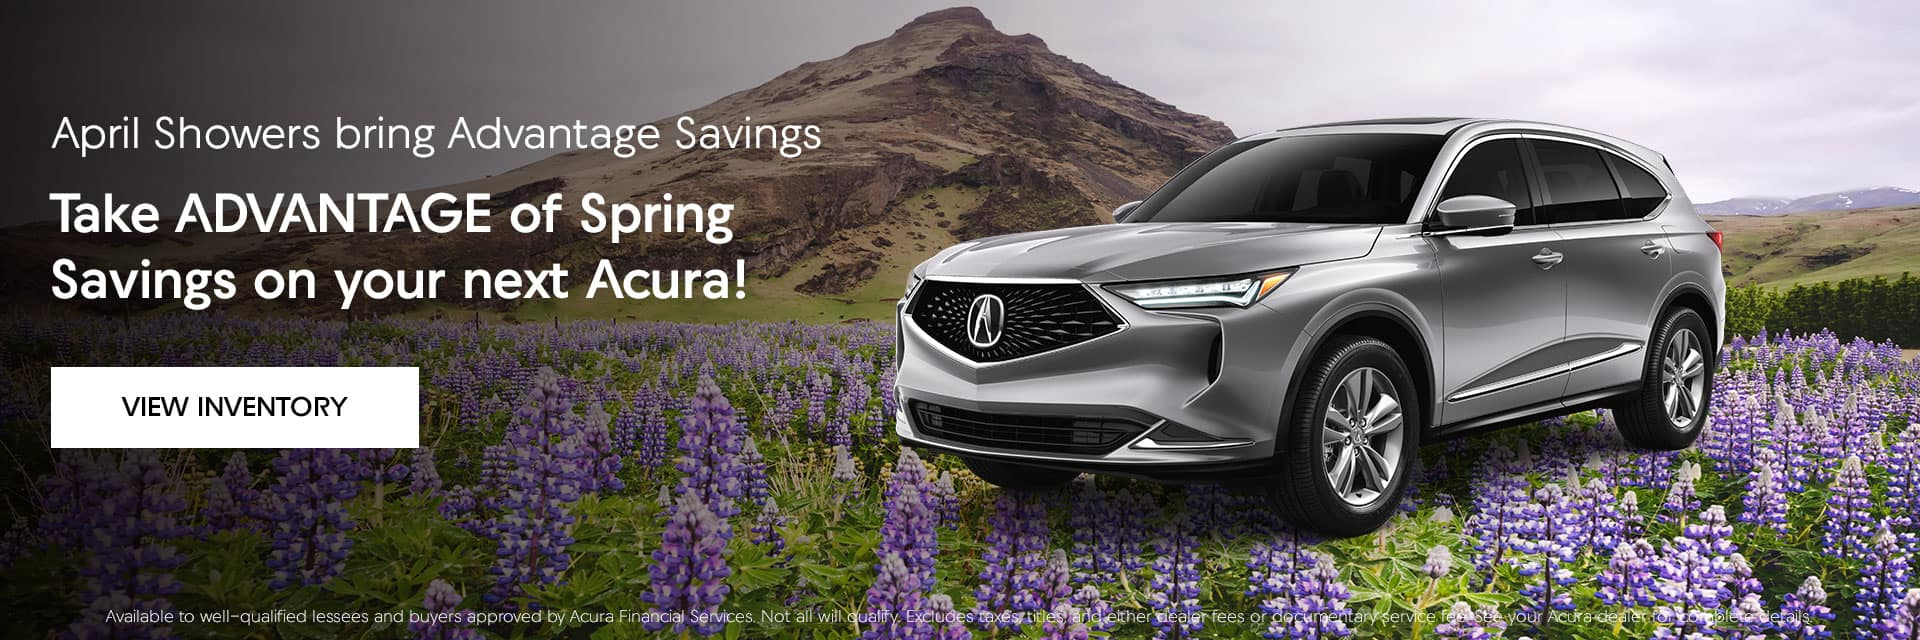 Take ADVANTAGE of Spring Savings on your next Acura!